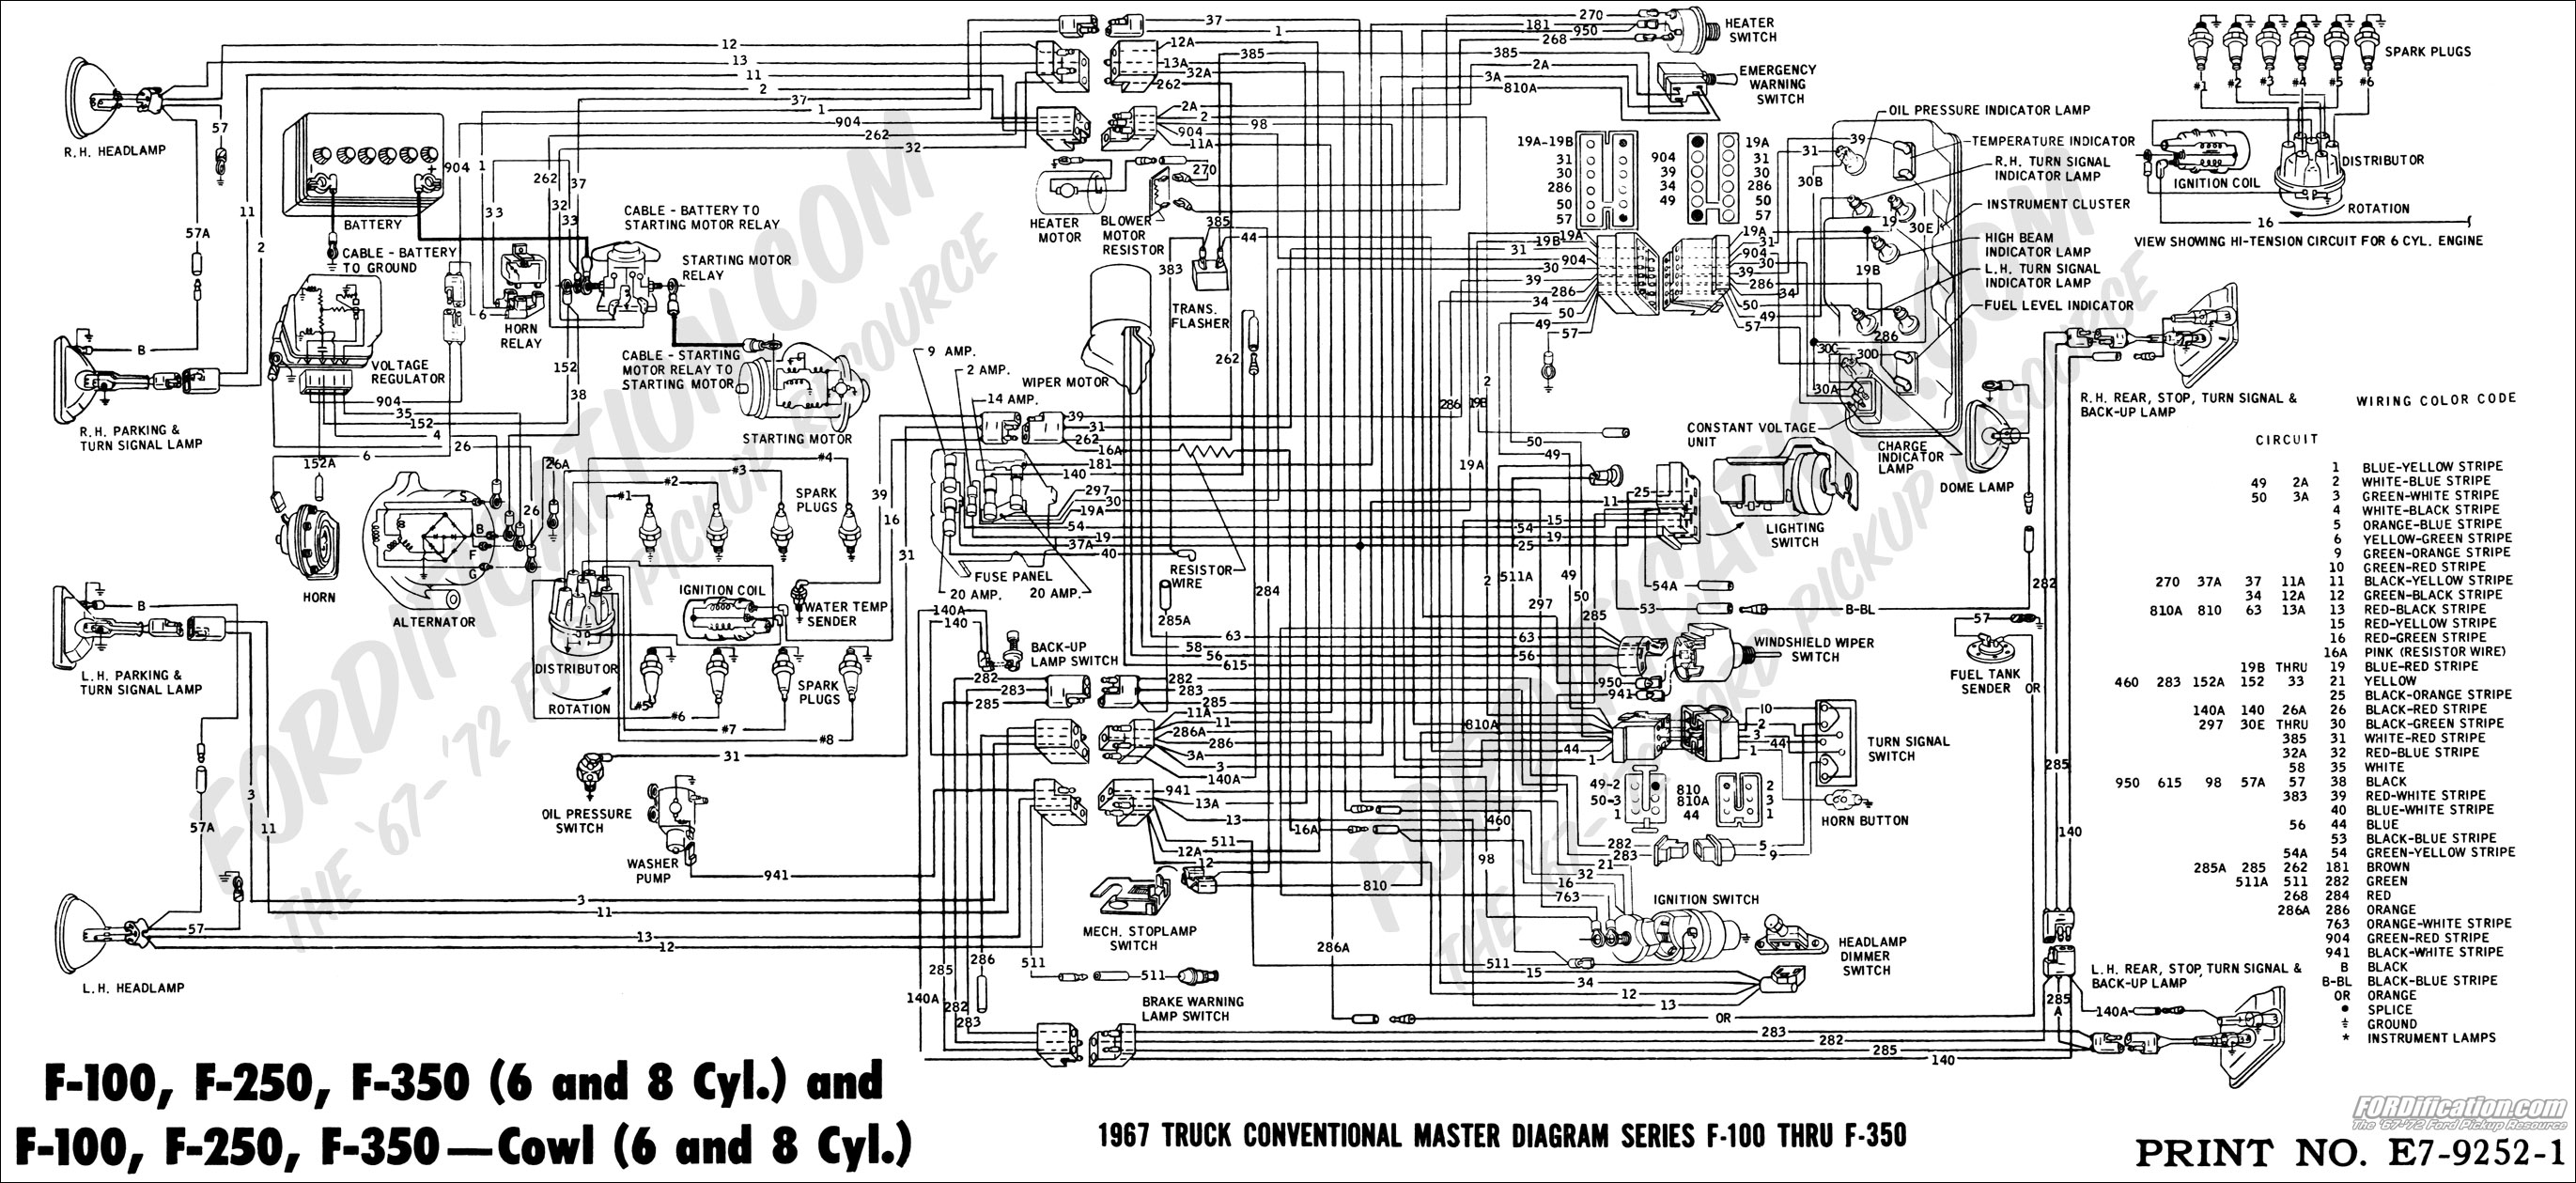 1989 ford f350 wiring diagram color code 1989 ford f350 wiring 1989 ford f350 wiring diagram color code ford truck technical drawings and schematics section h